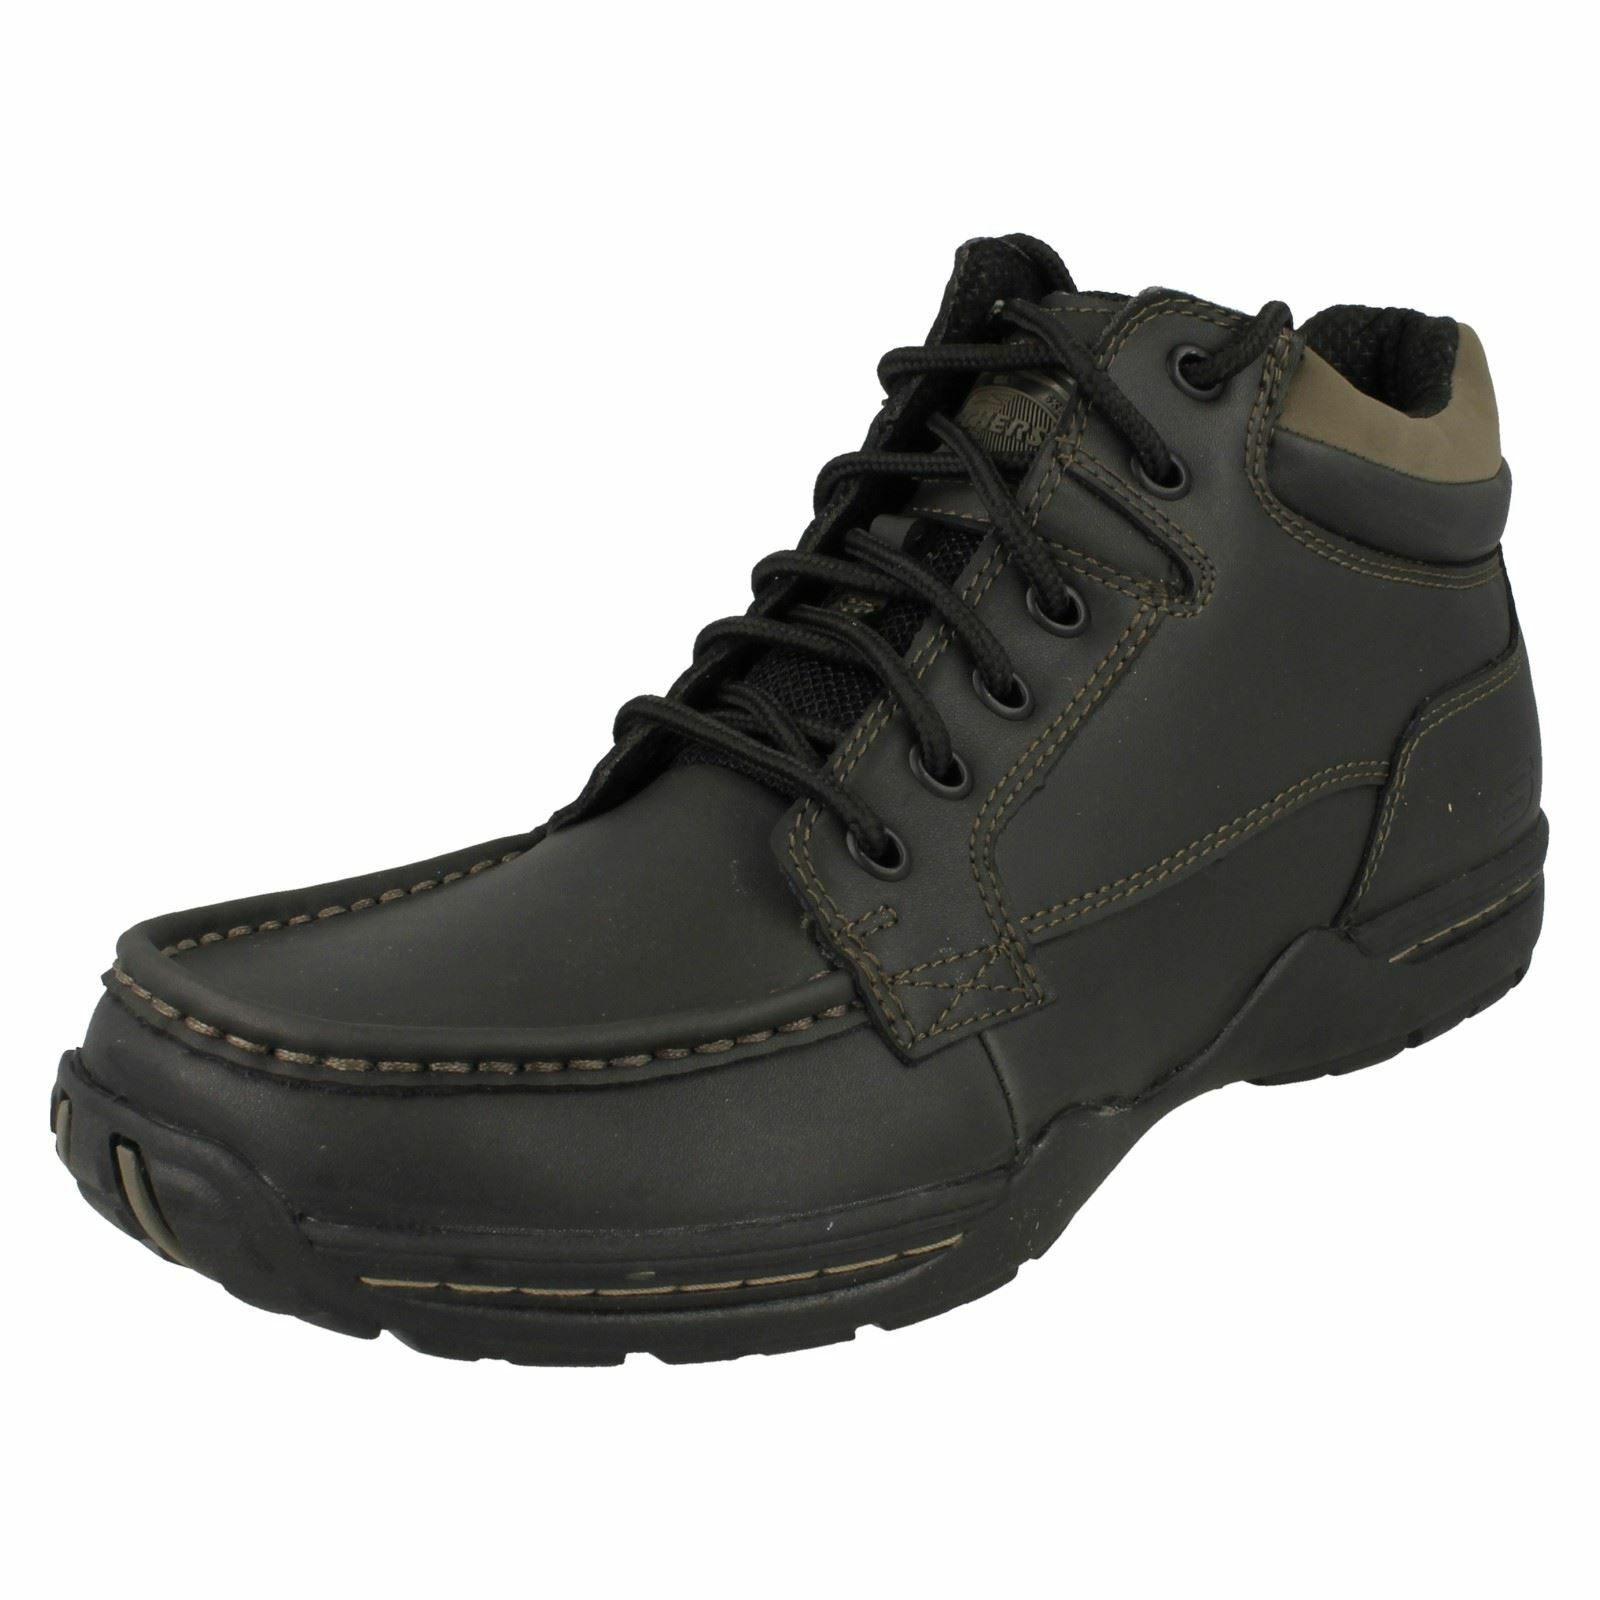 Hombre Skechers Ankle Casual Lace Up Ankle Skechers botas - Deside 4a45f4